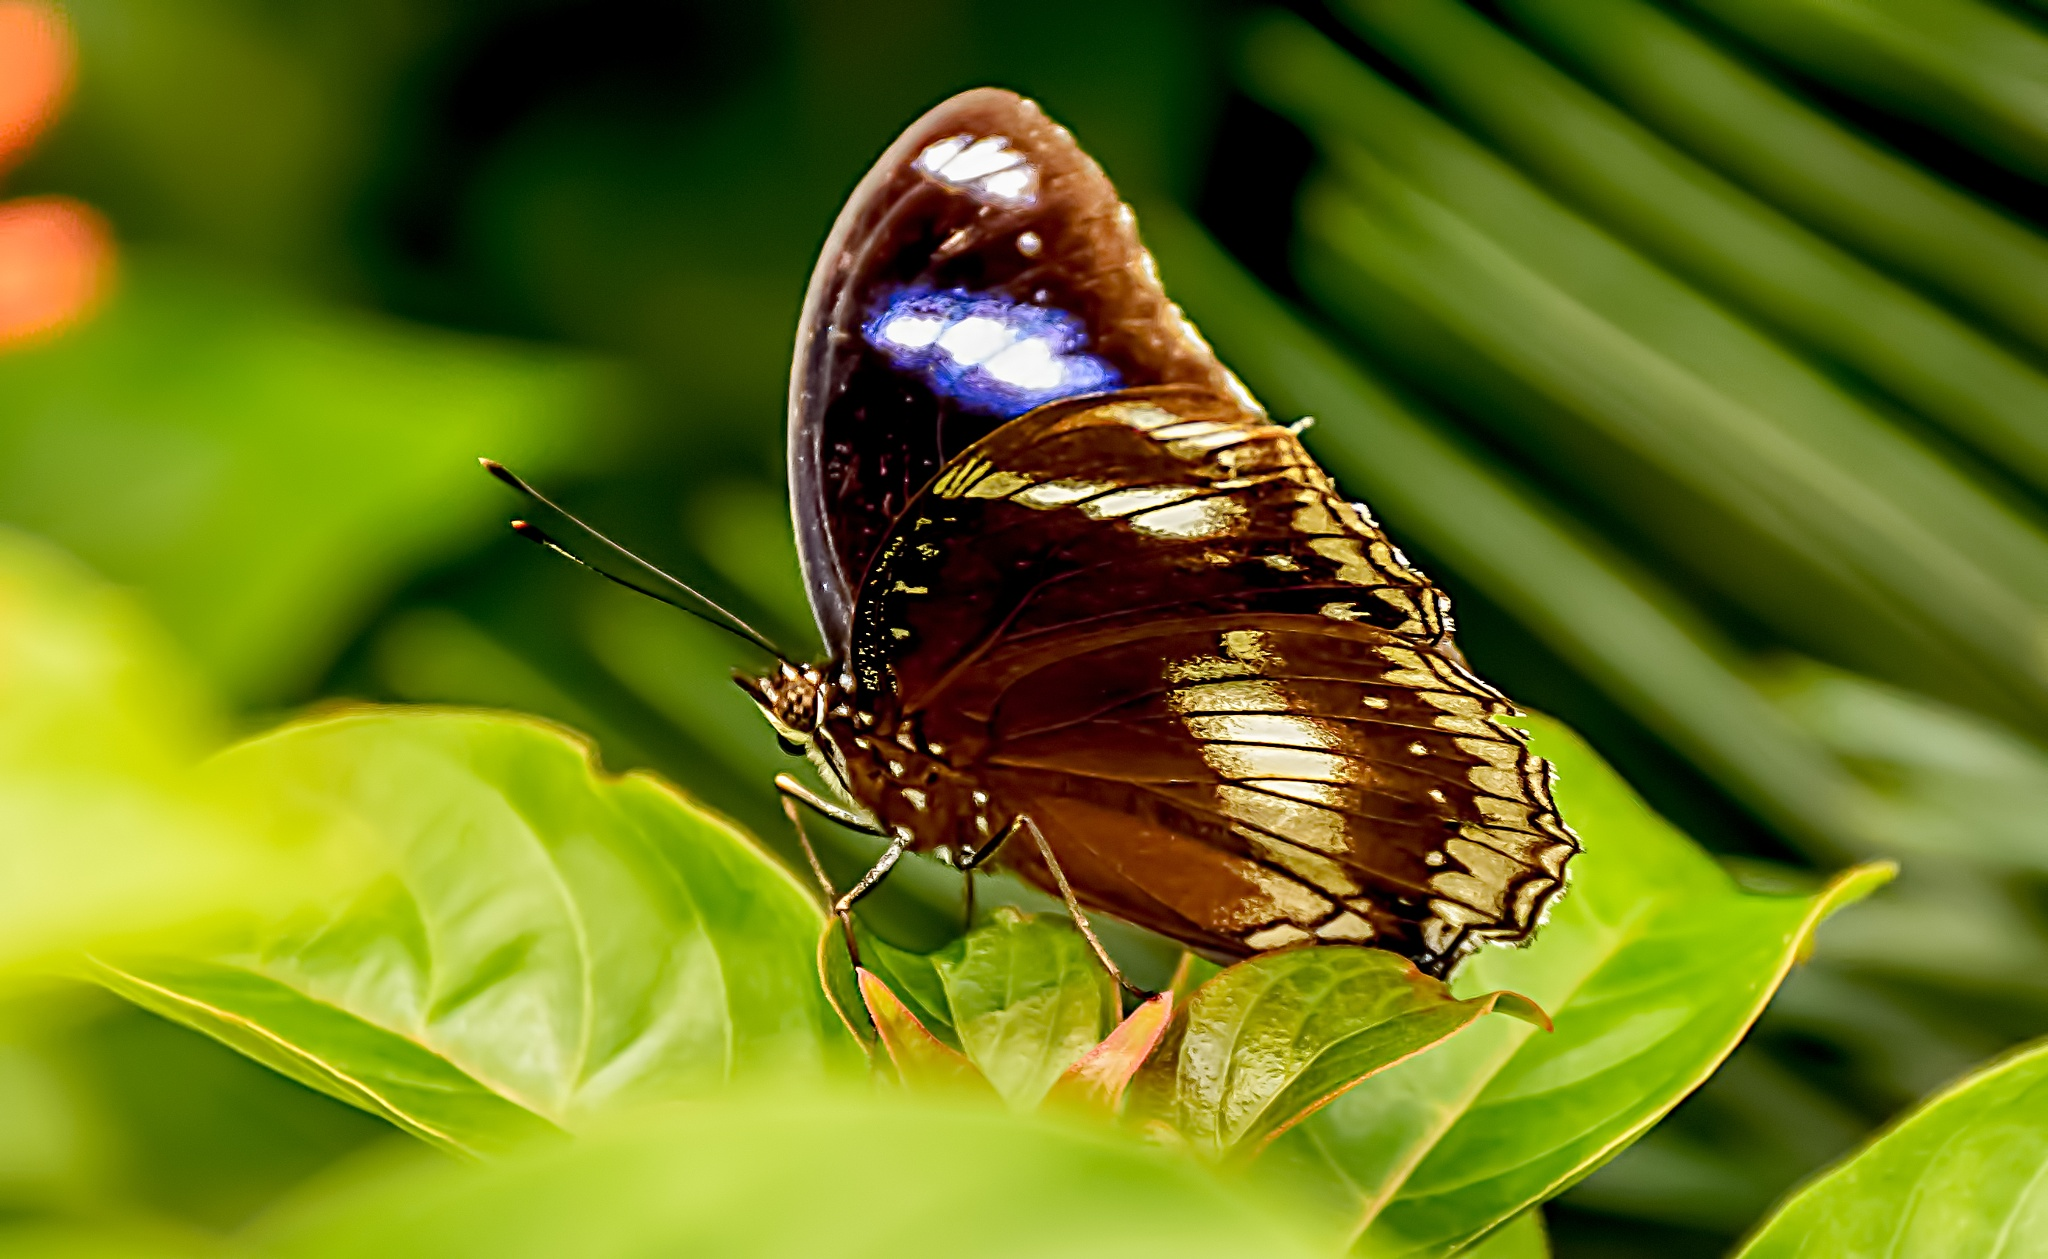 Blue moon butterfly on a leaf by Malcolm